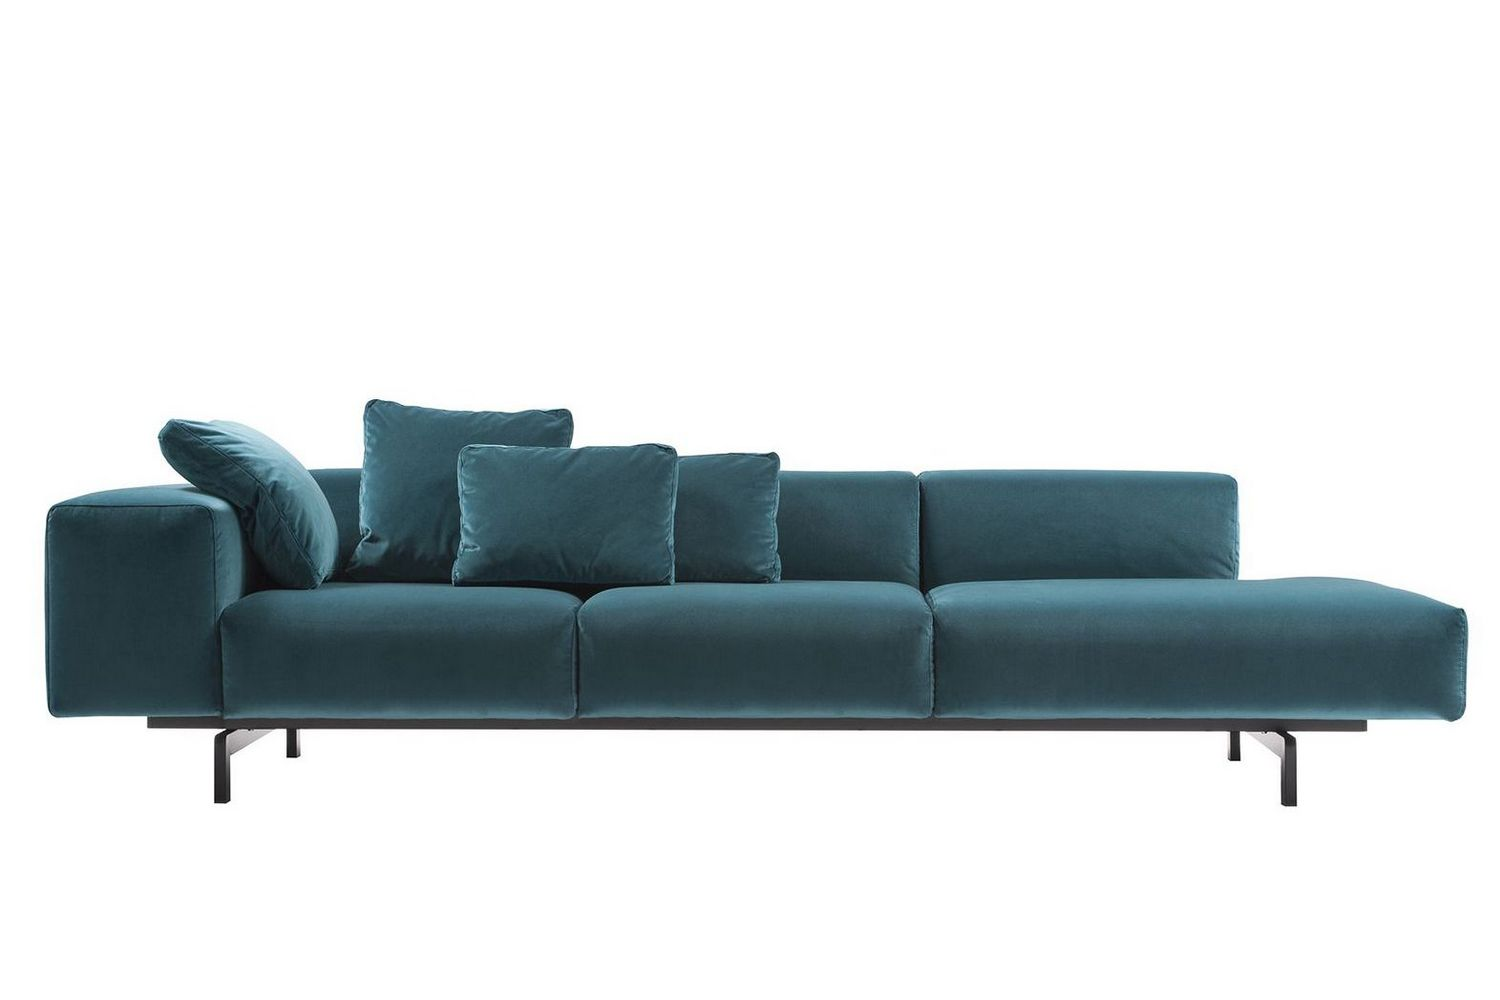 Kartell Sofa Largo Velluto Sofa By Piero Lissoni For Kartell Space Furniture